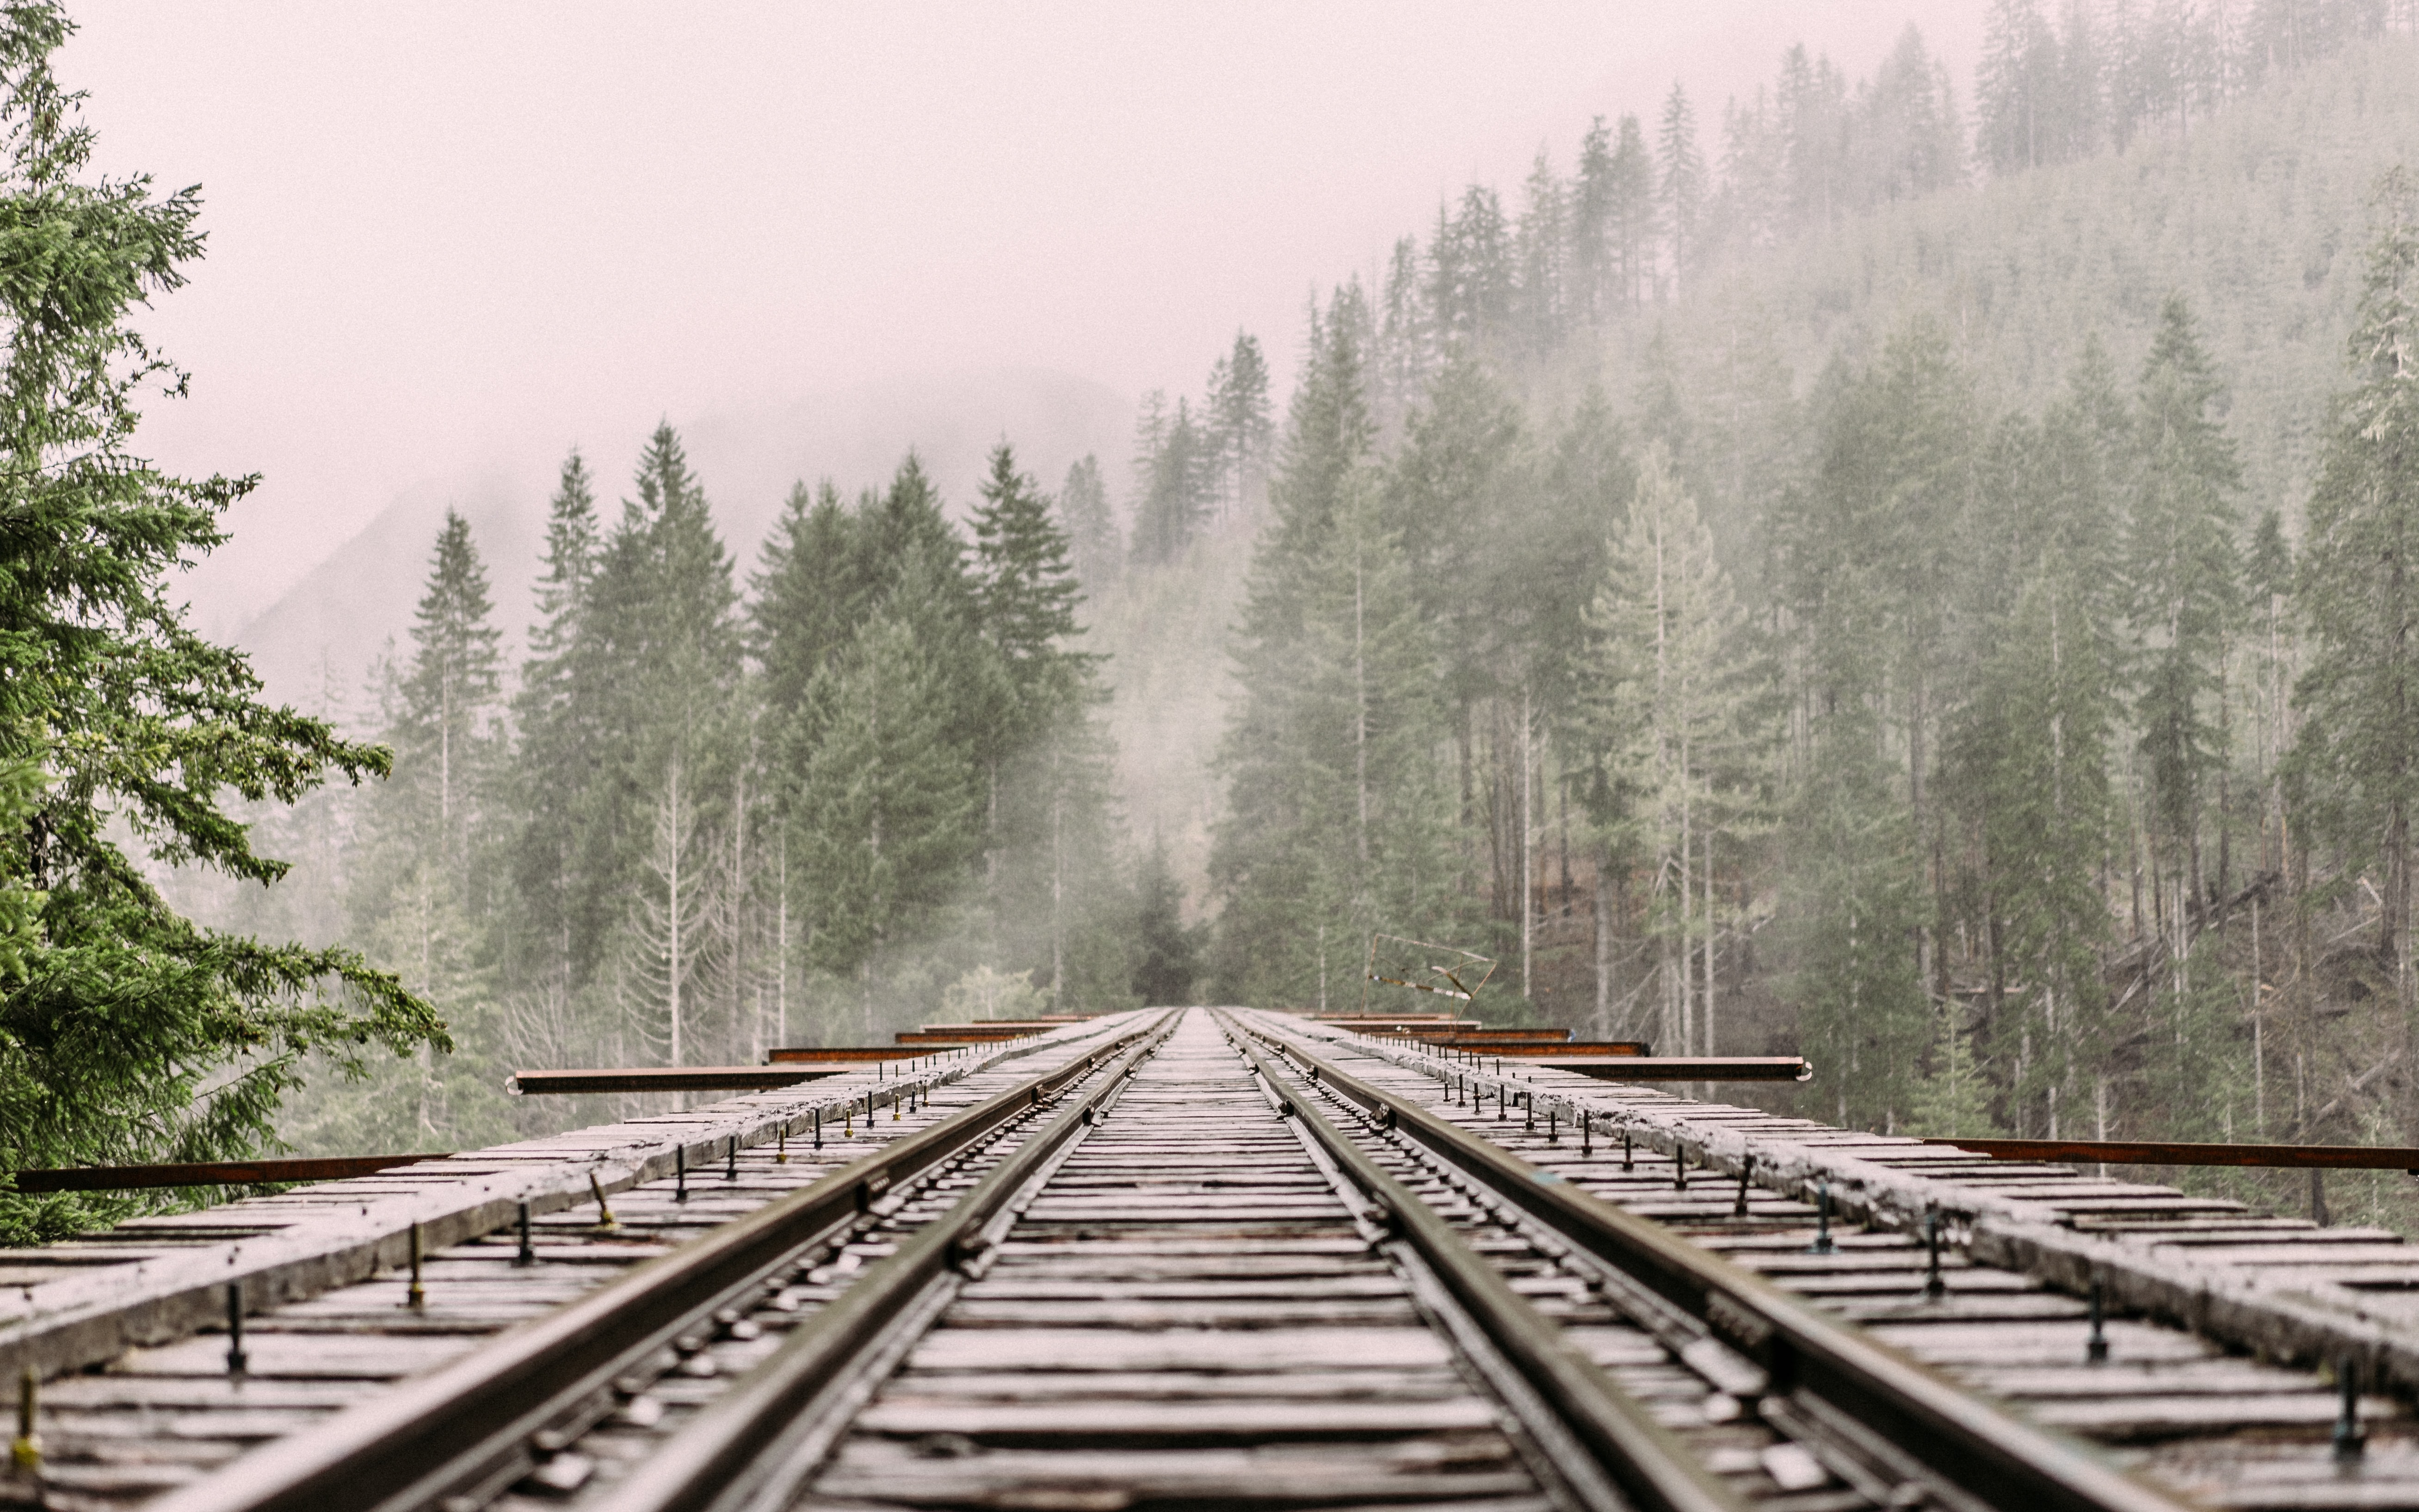 A low shot of a railroad track leading into a coniferous forest